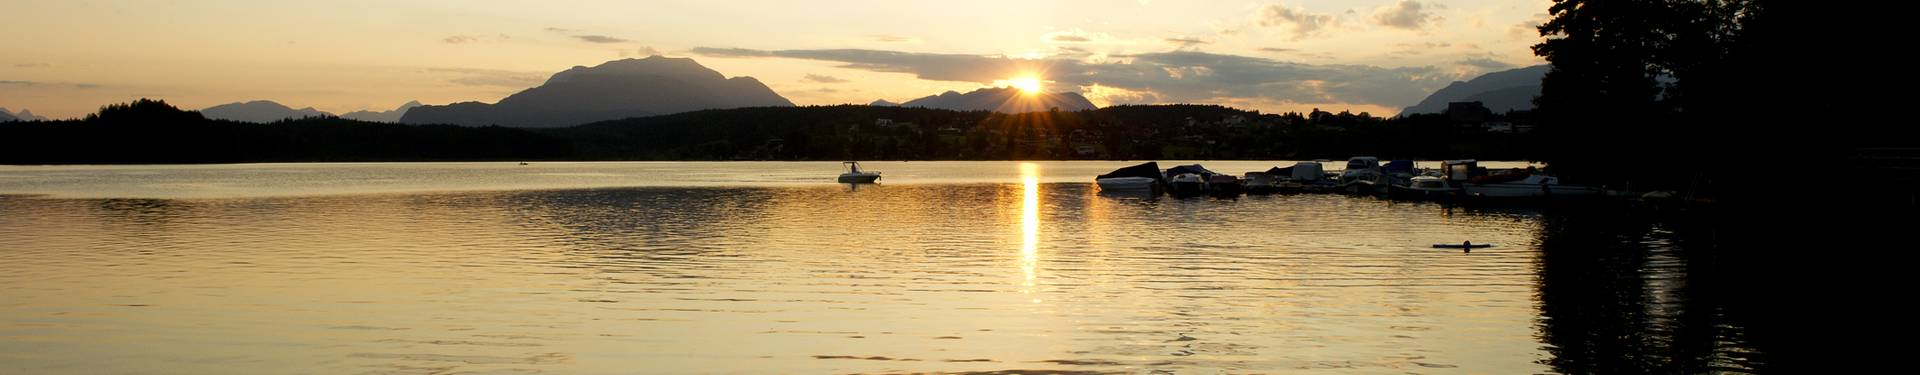 Sommer am Faakersee